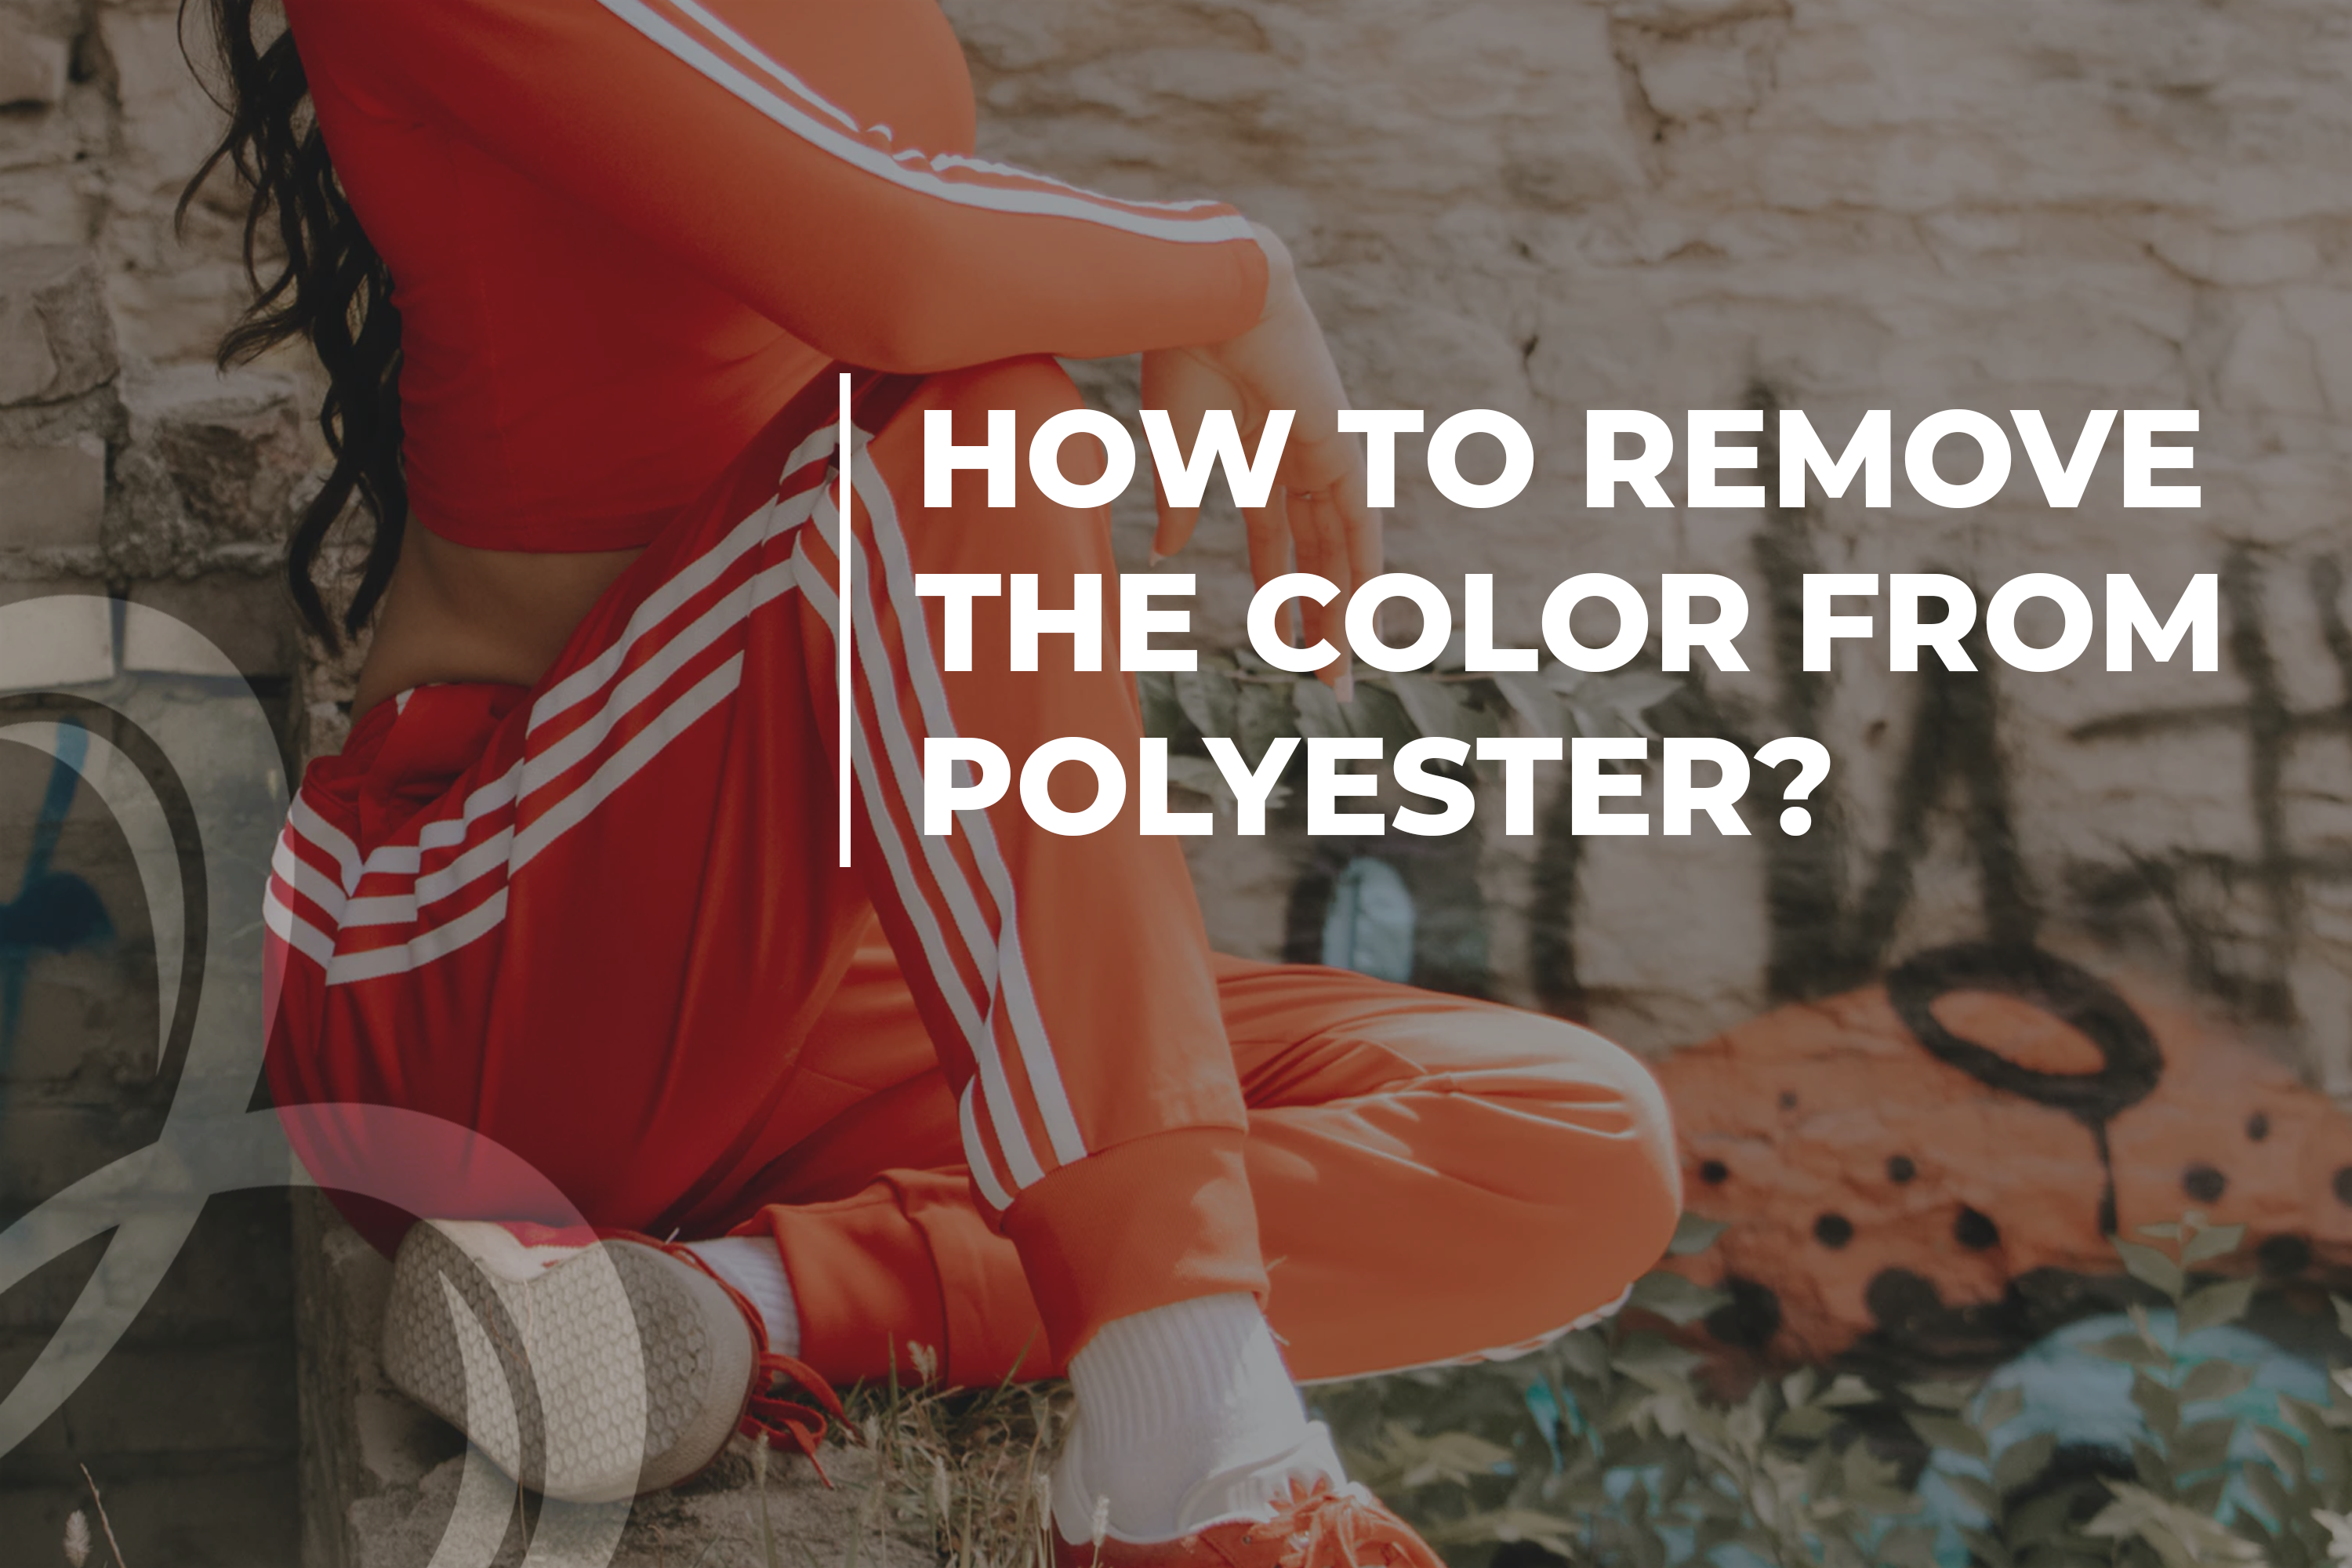 How to remove the color from polyester